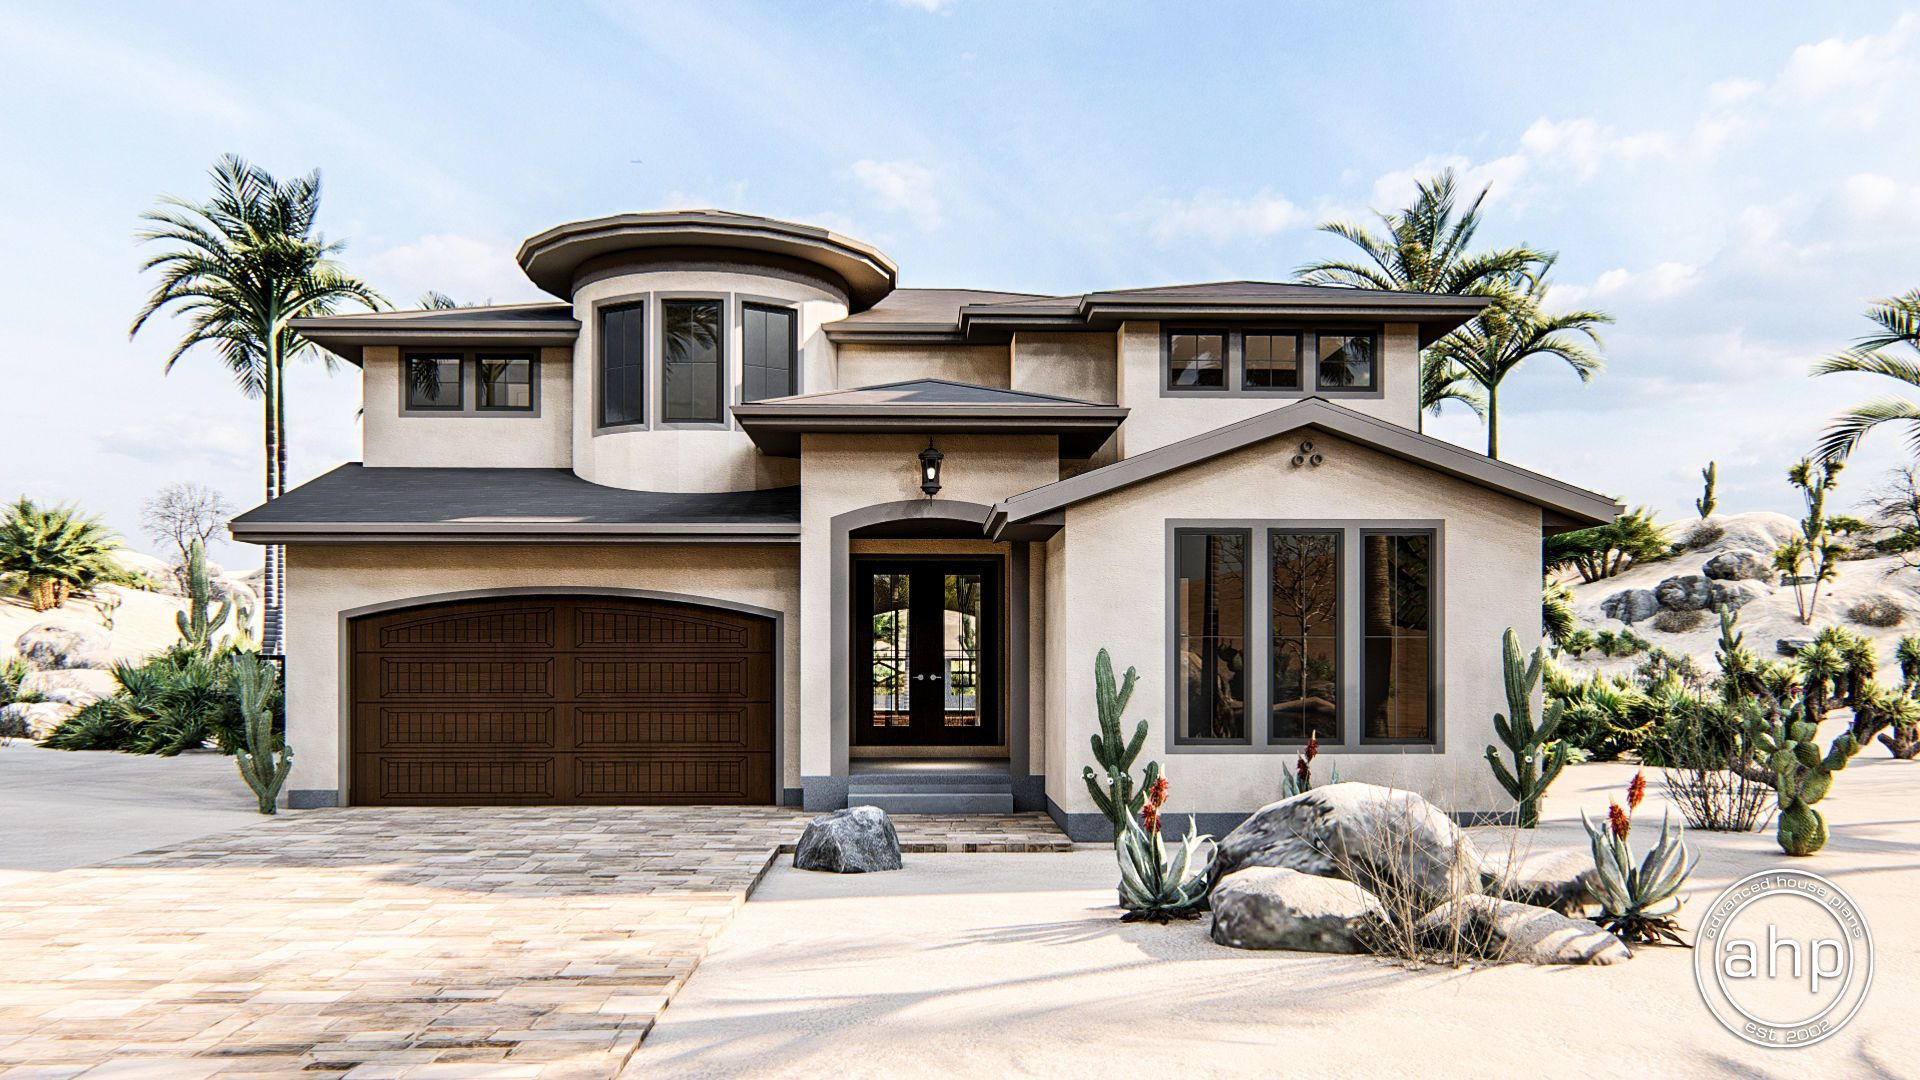 Pin On Mediterranean Style House Plans